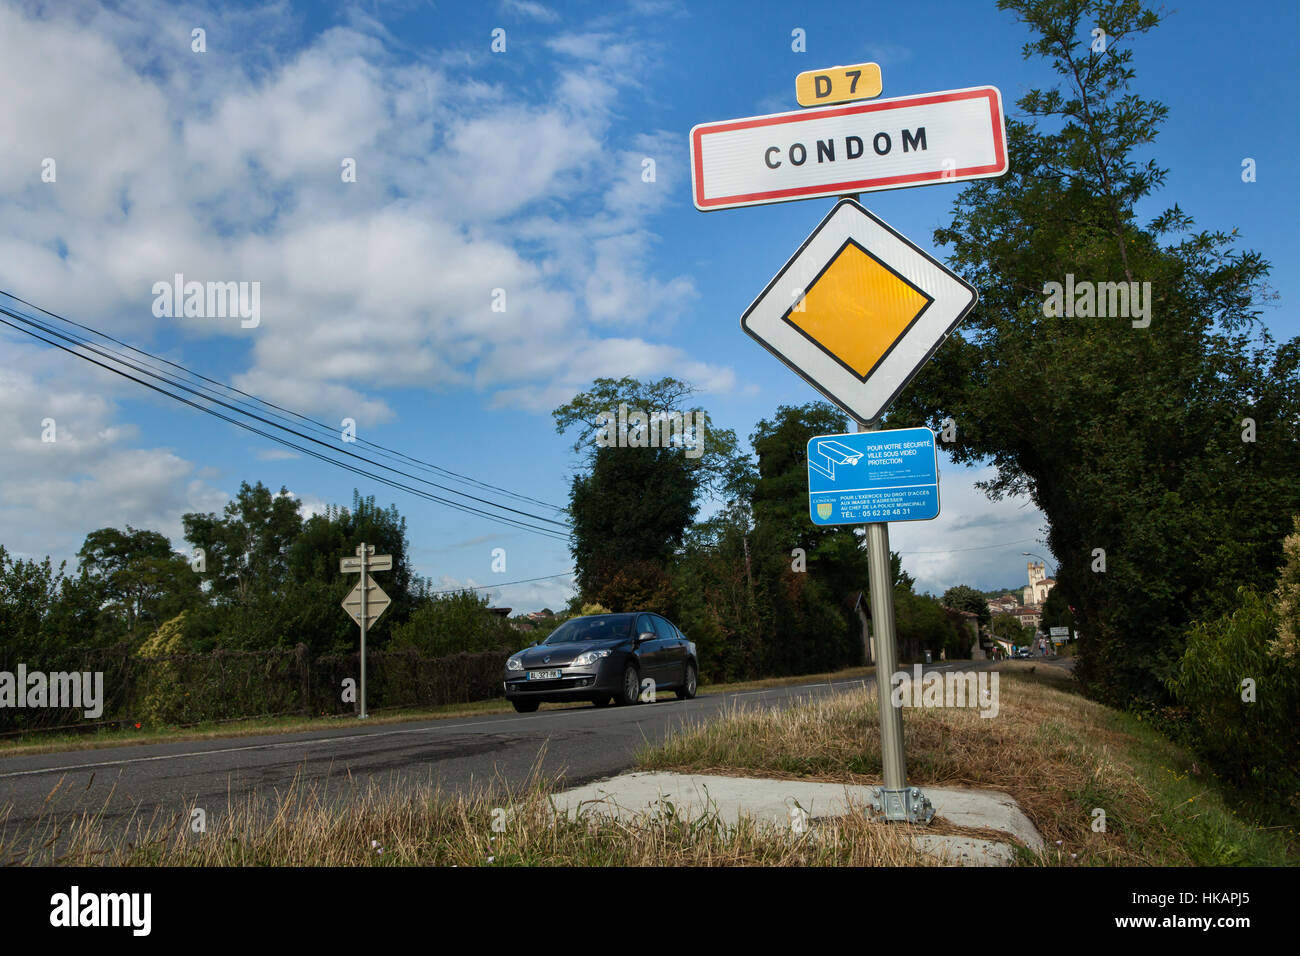 Traffic sign at the entrance to the town of Condom in Gers, France. - Stock Image